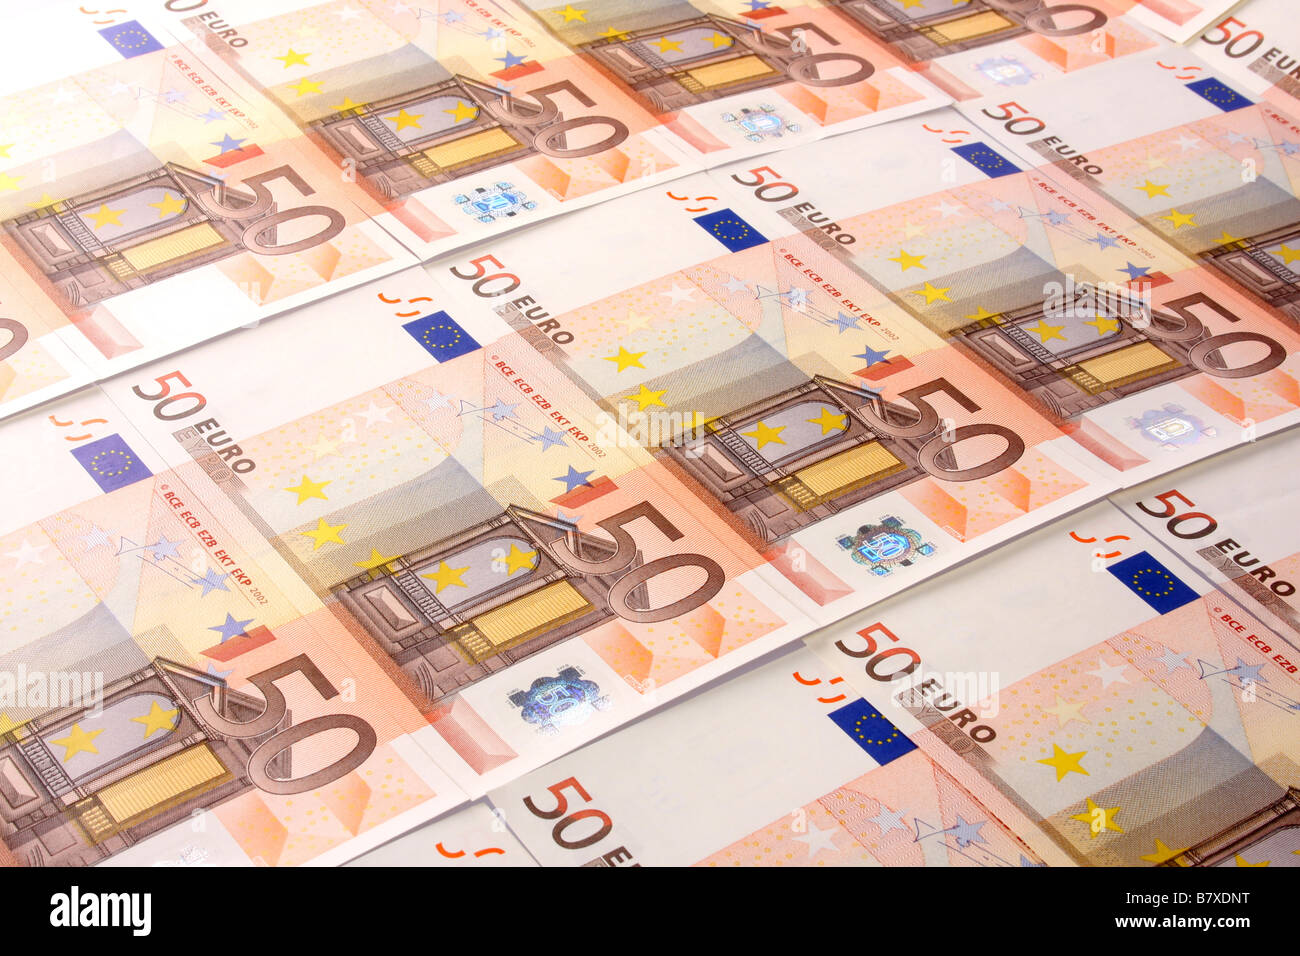 Fifty Euro bank notes. - Stock Image